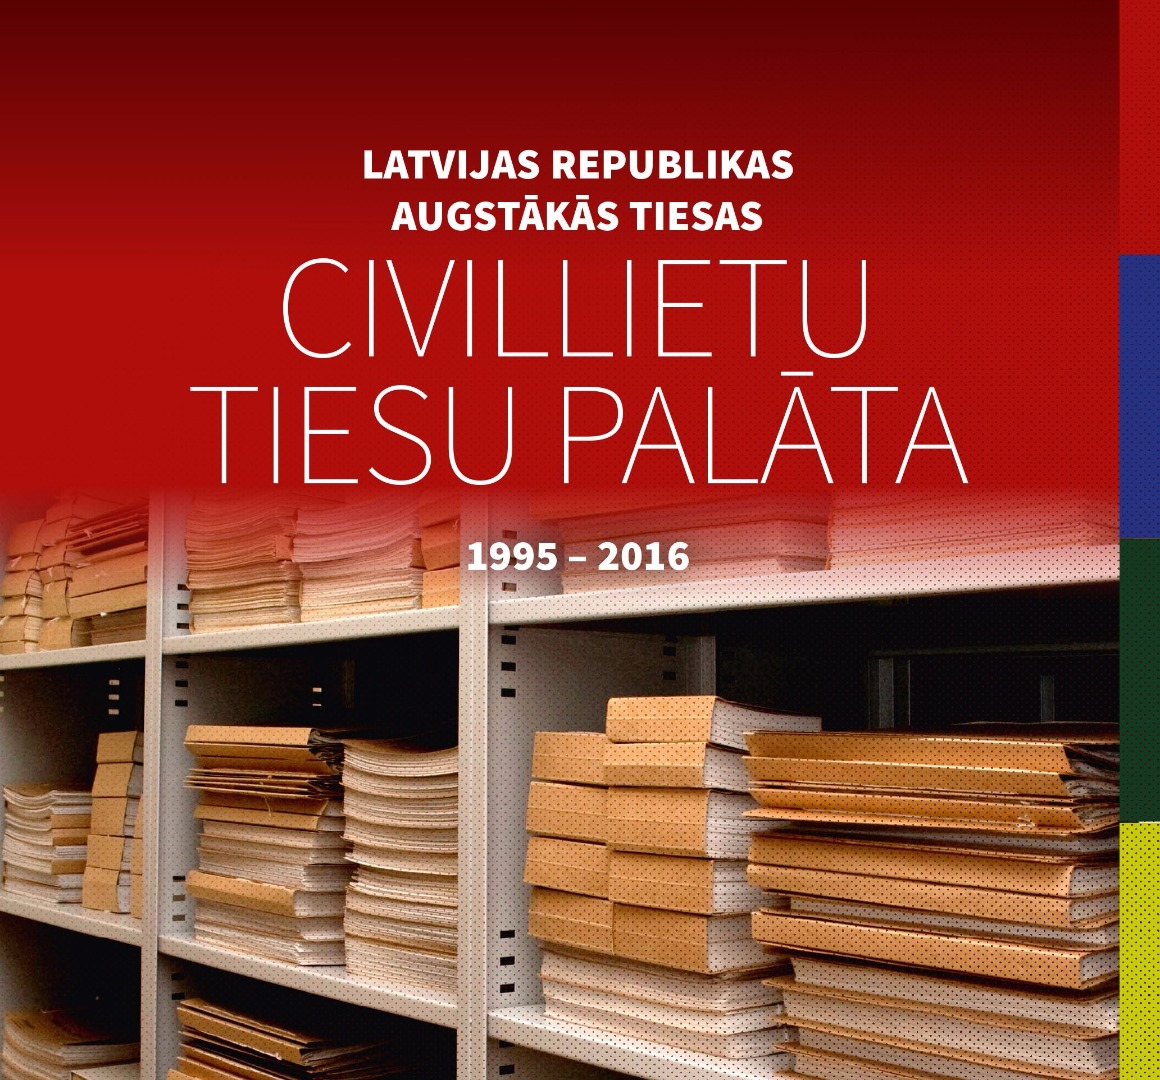 15.12.2016. In order to keep the testimony of 21 years long history, during which the Chambers of the Supreme Court operated as an appellate instance, the Supreme Court has issued a brochure